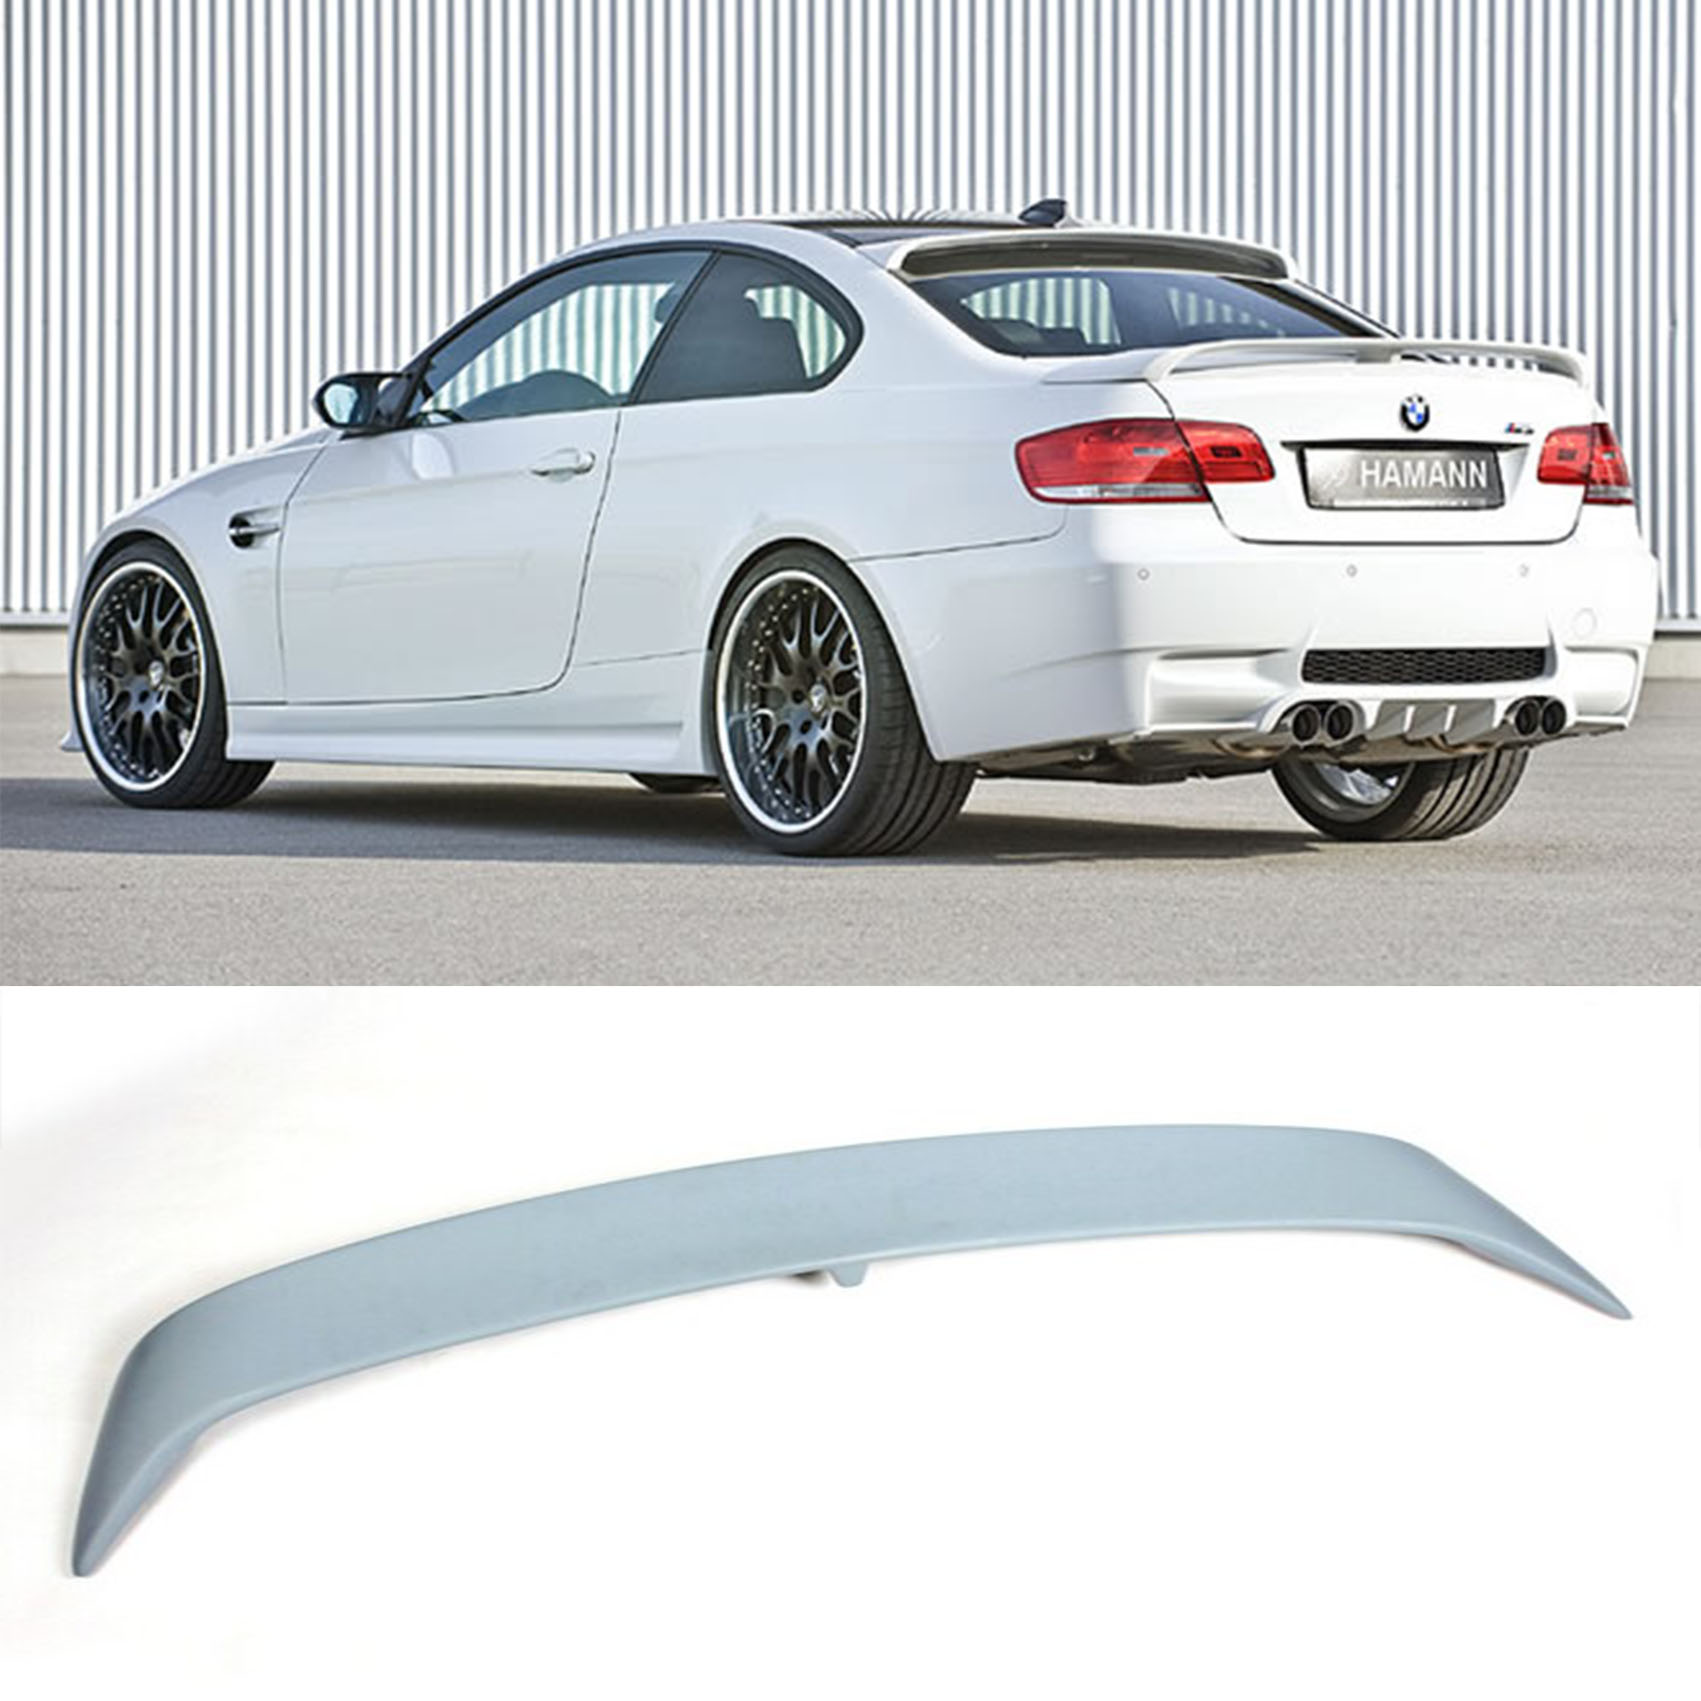 Frp e92 coupe car rear spoiler wing hm style for bmw 3 series 2006 2013